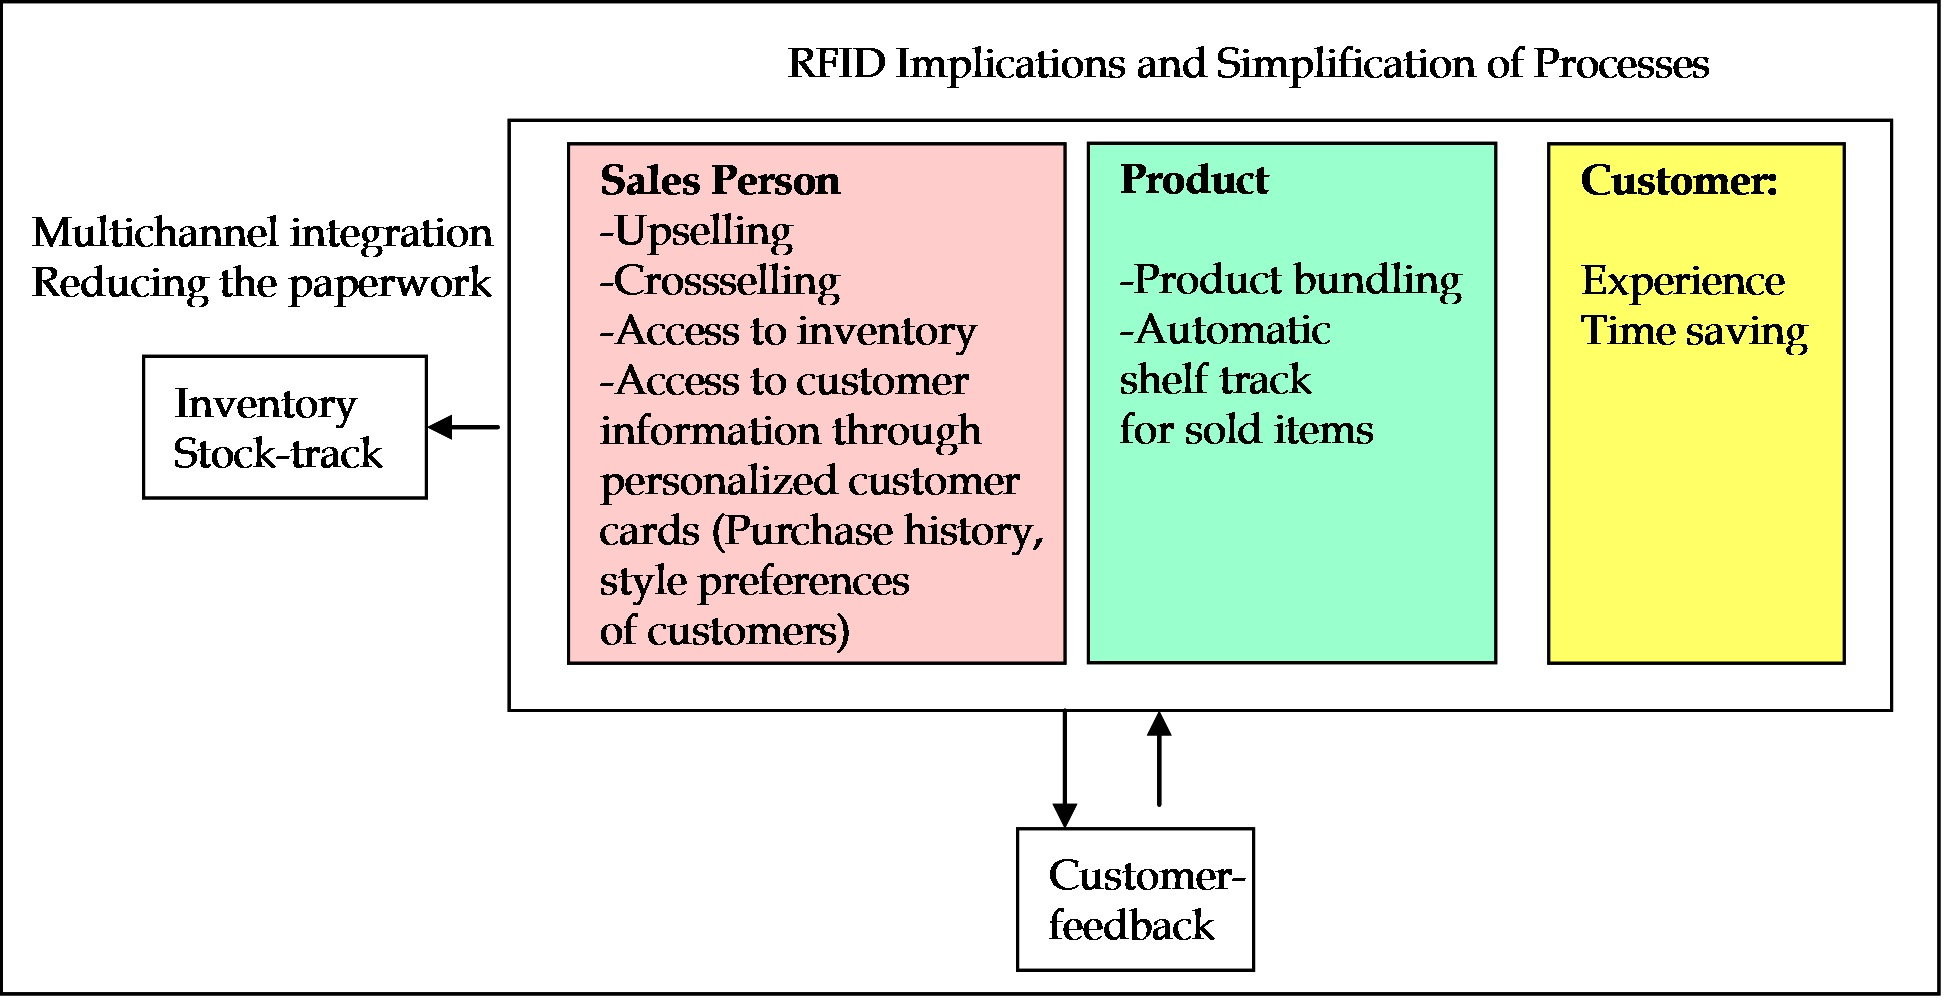 Using RFID Technology for Simplification of Retail Processes